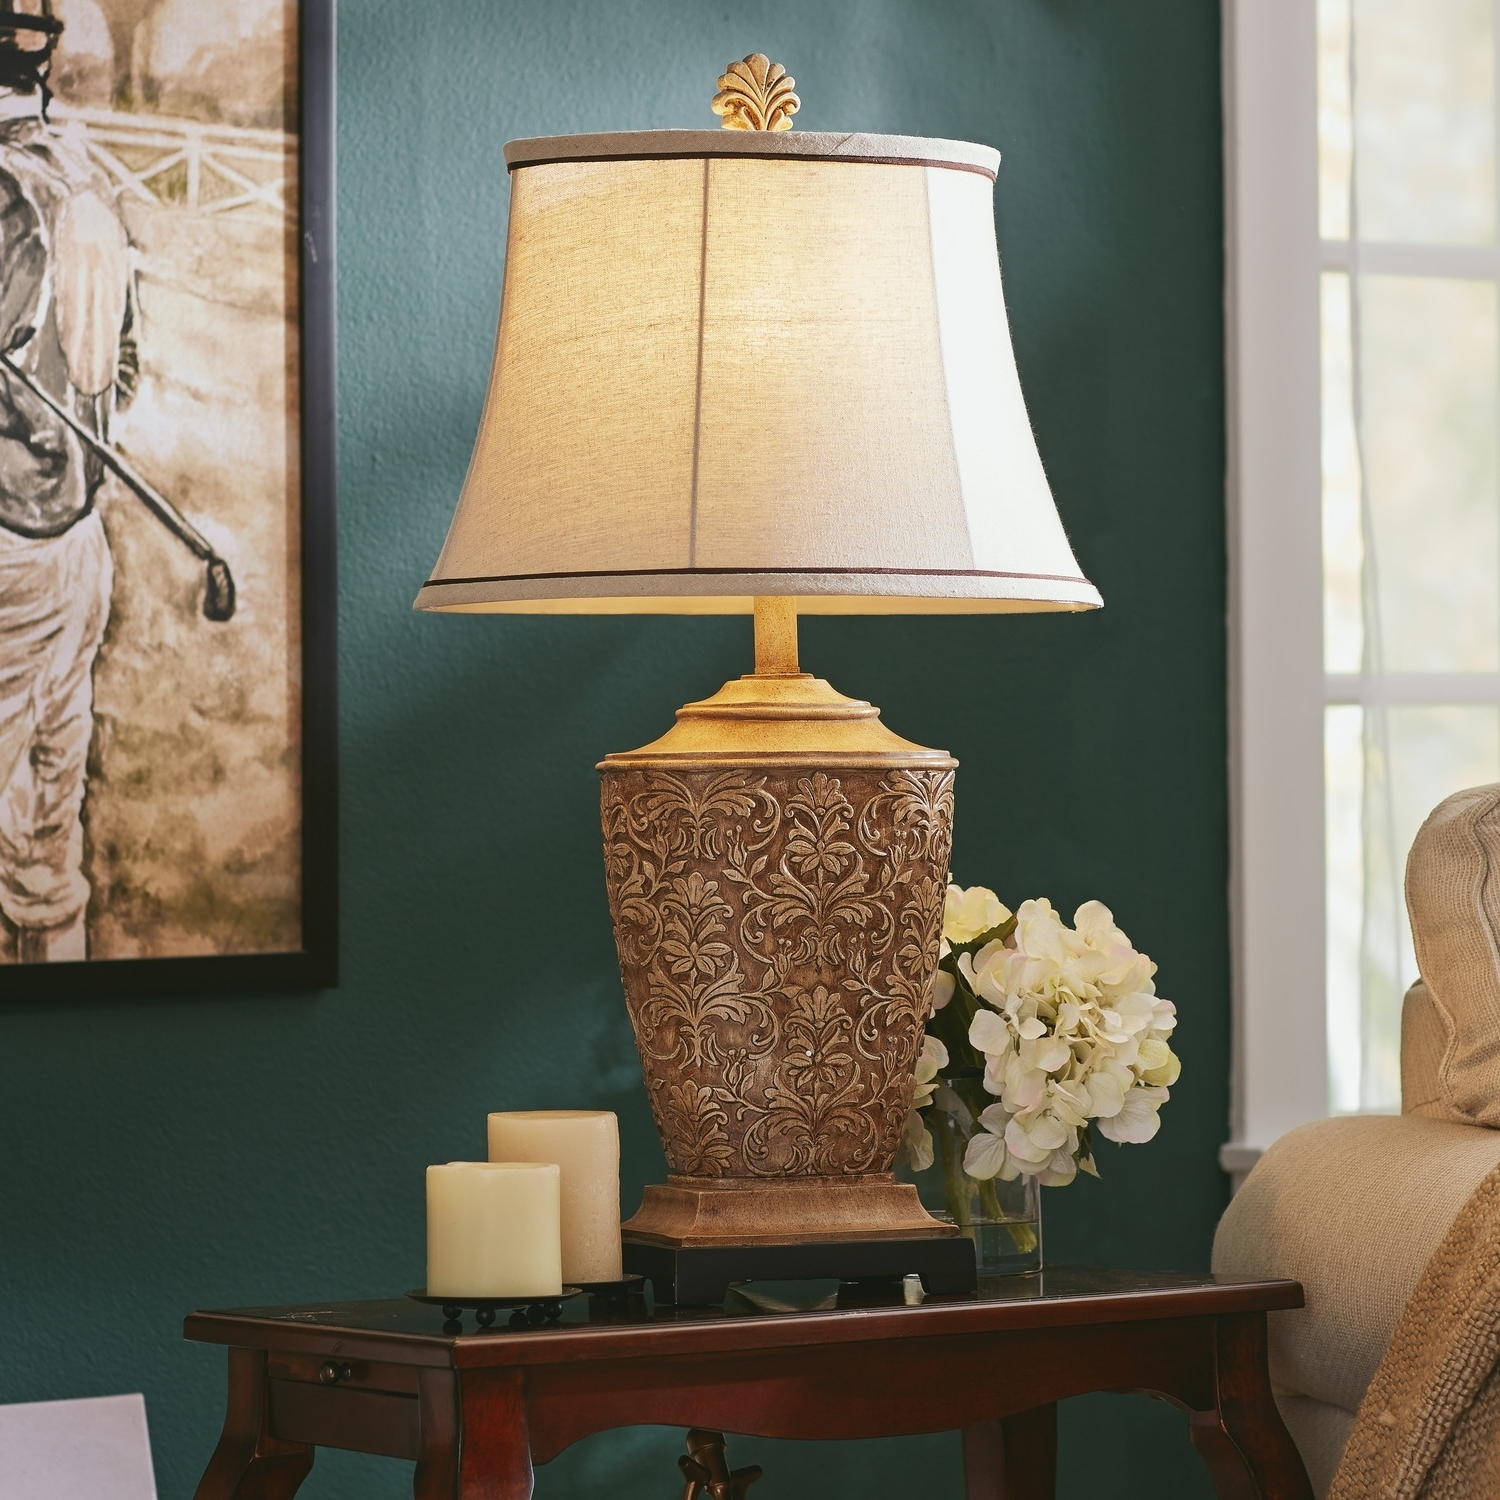 Best And Newest Table Lamps For Living Room 15 With Table Lamps For Living Room Inside Formal Living Room Table Lamps (View 4 of 15)